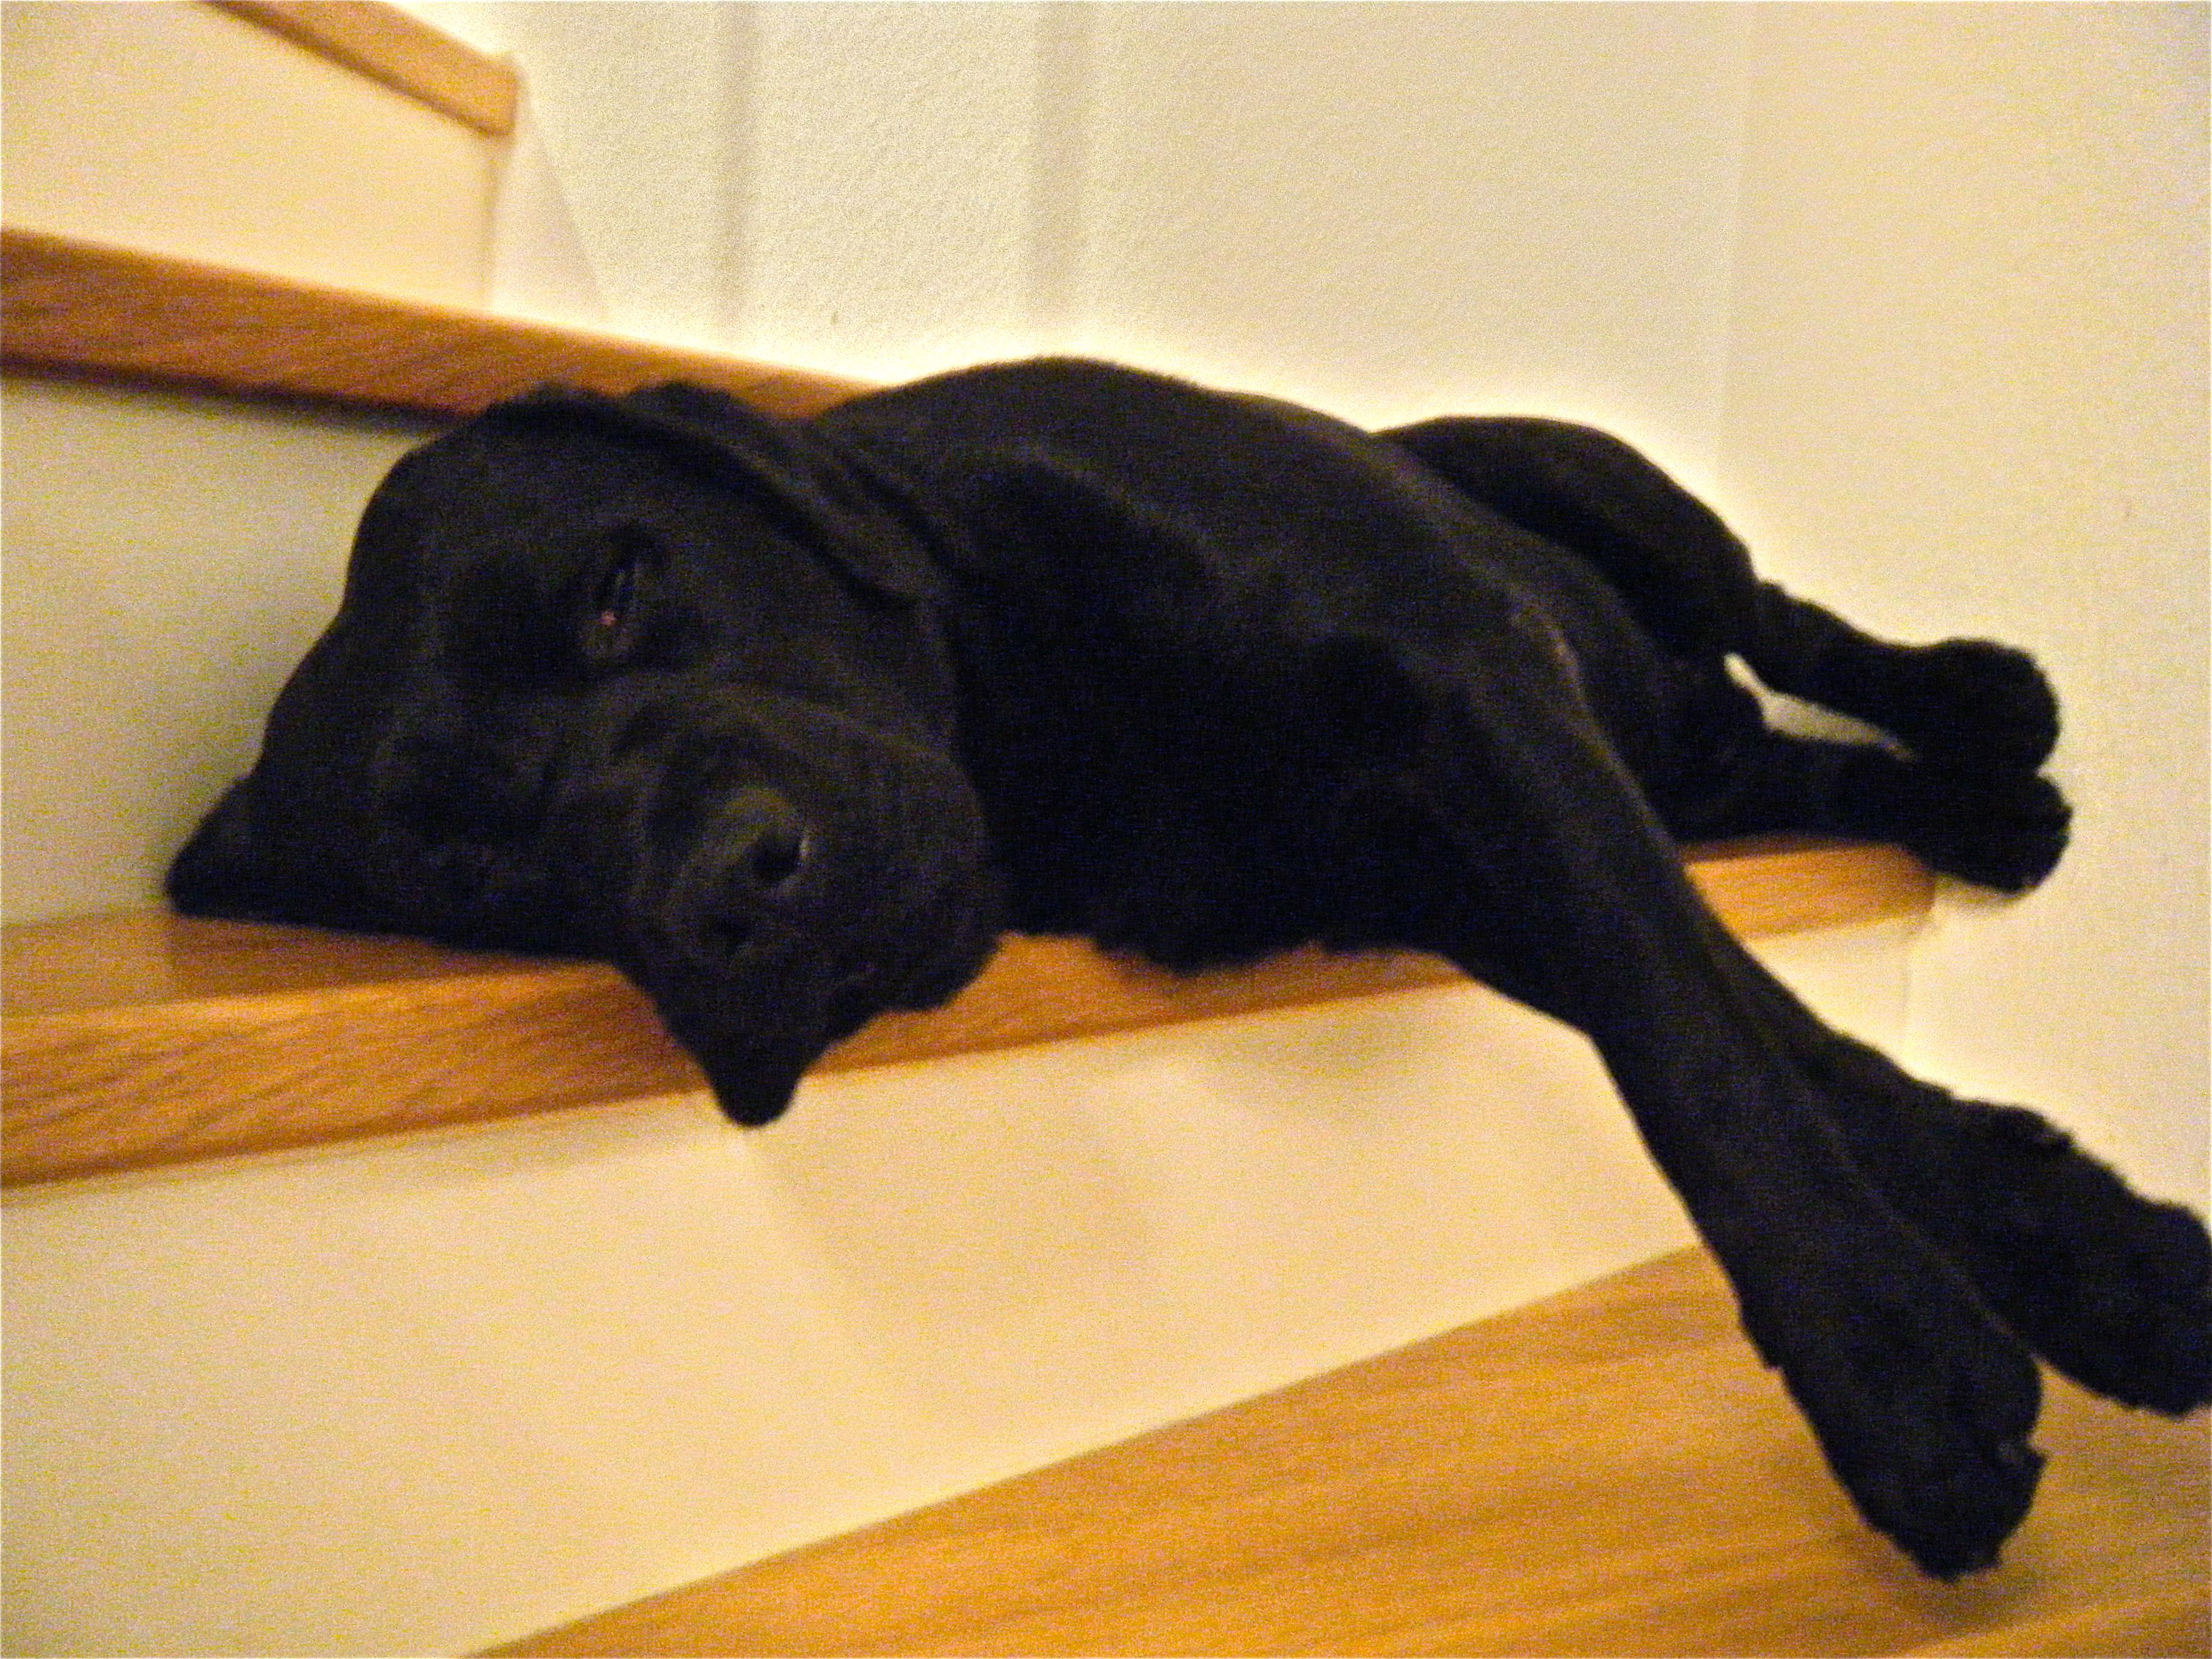 What is the best way to house train a puppy that has spent all his life outdoors?